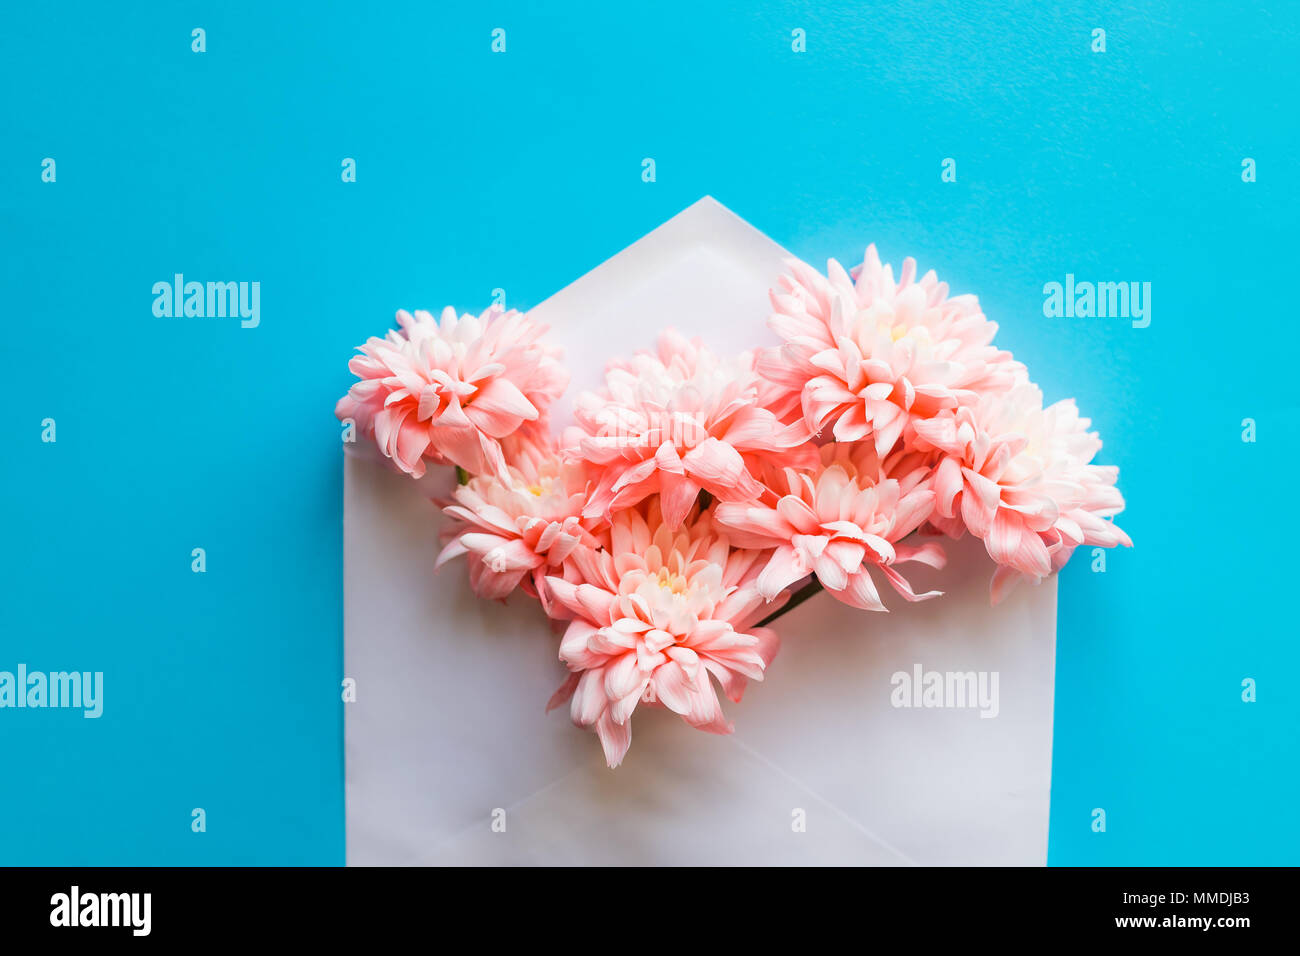 Fresh Beautiful Flowers Bunch In Envelope On Pastel Blue Background